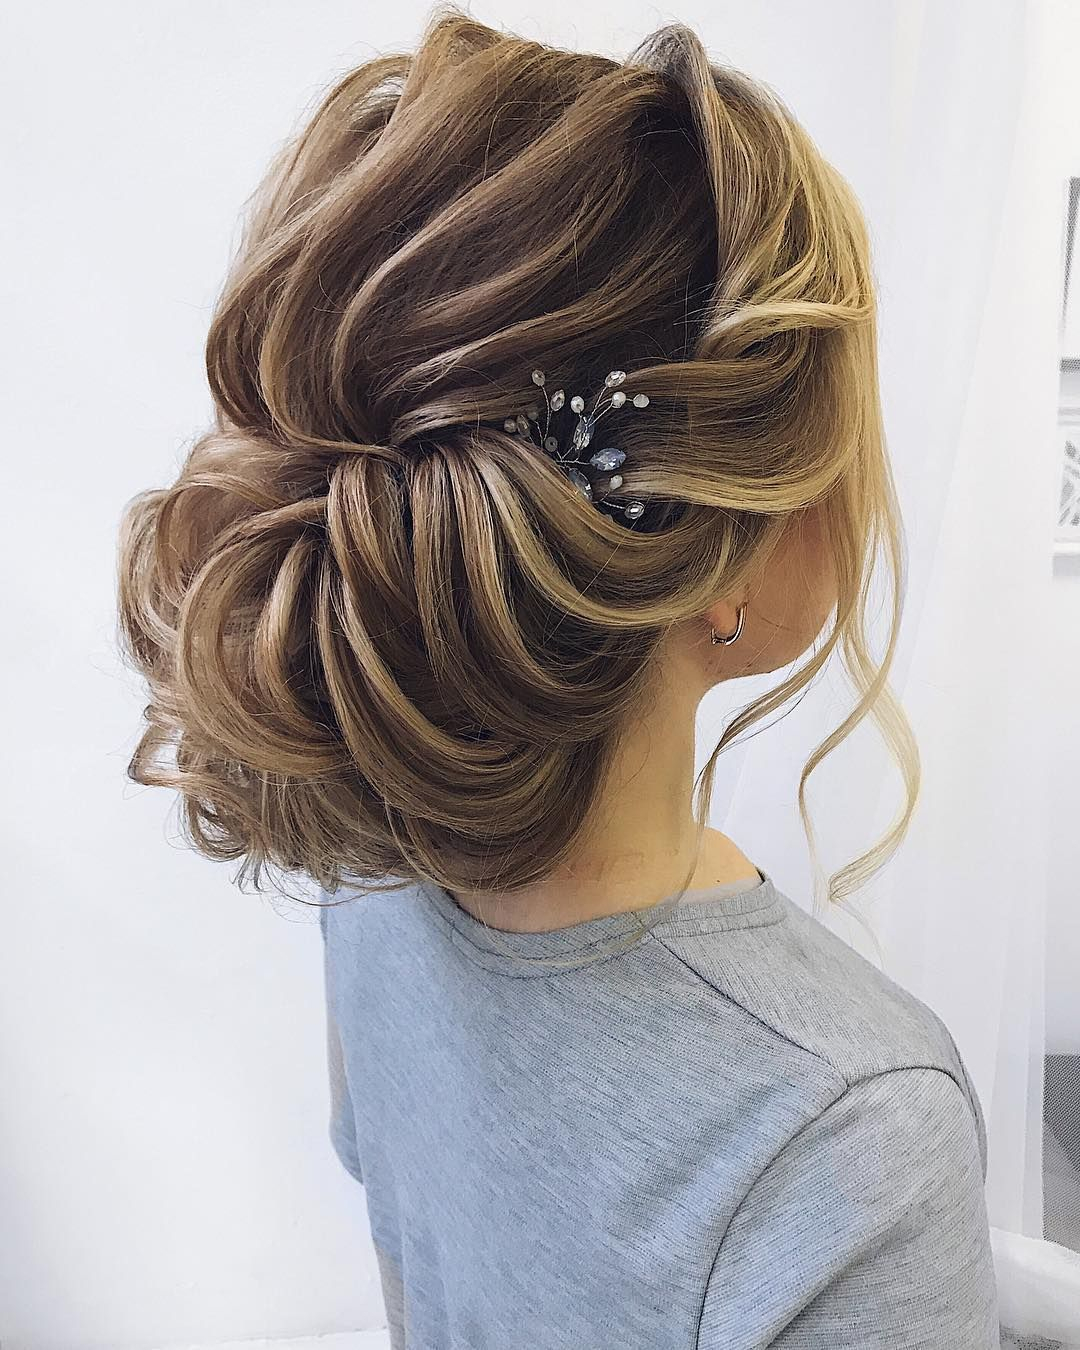 92 drop dead gorgeous wedding hairstyles for every bride to be textured wedding updo hairstyle messy updo wedding hairstyles chignon messy updo hairstyles junglespirit Choice Image